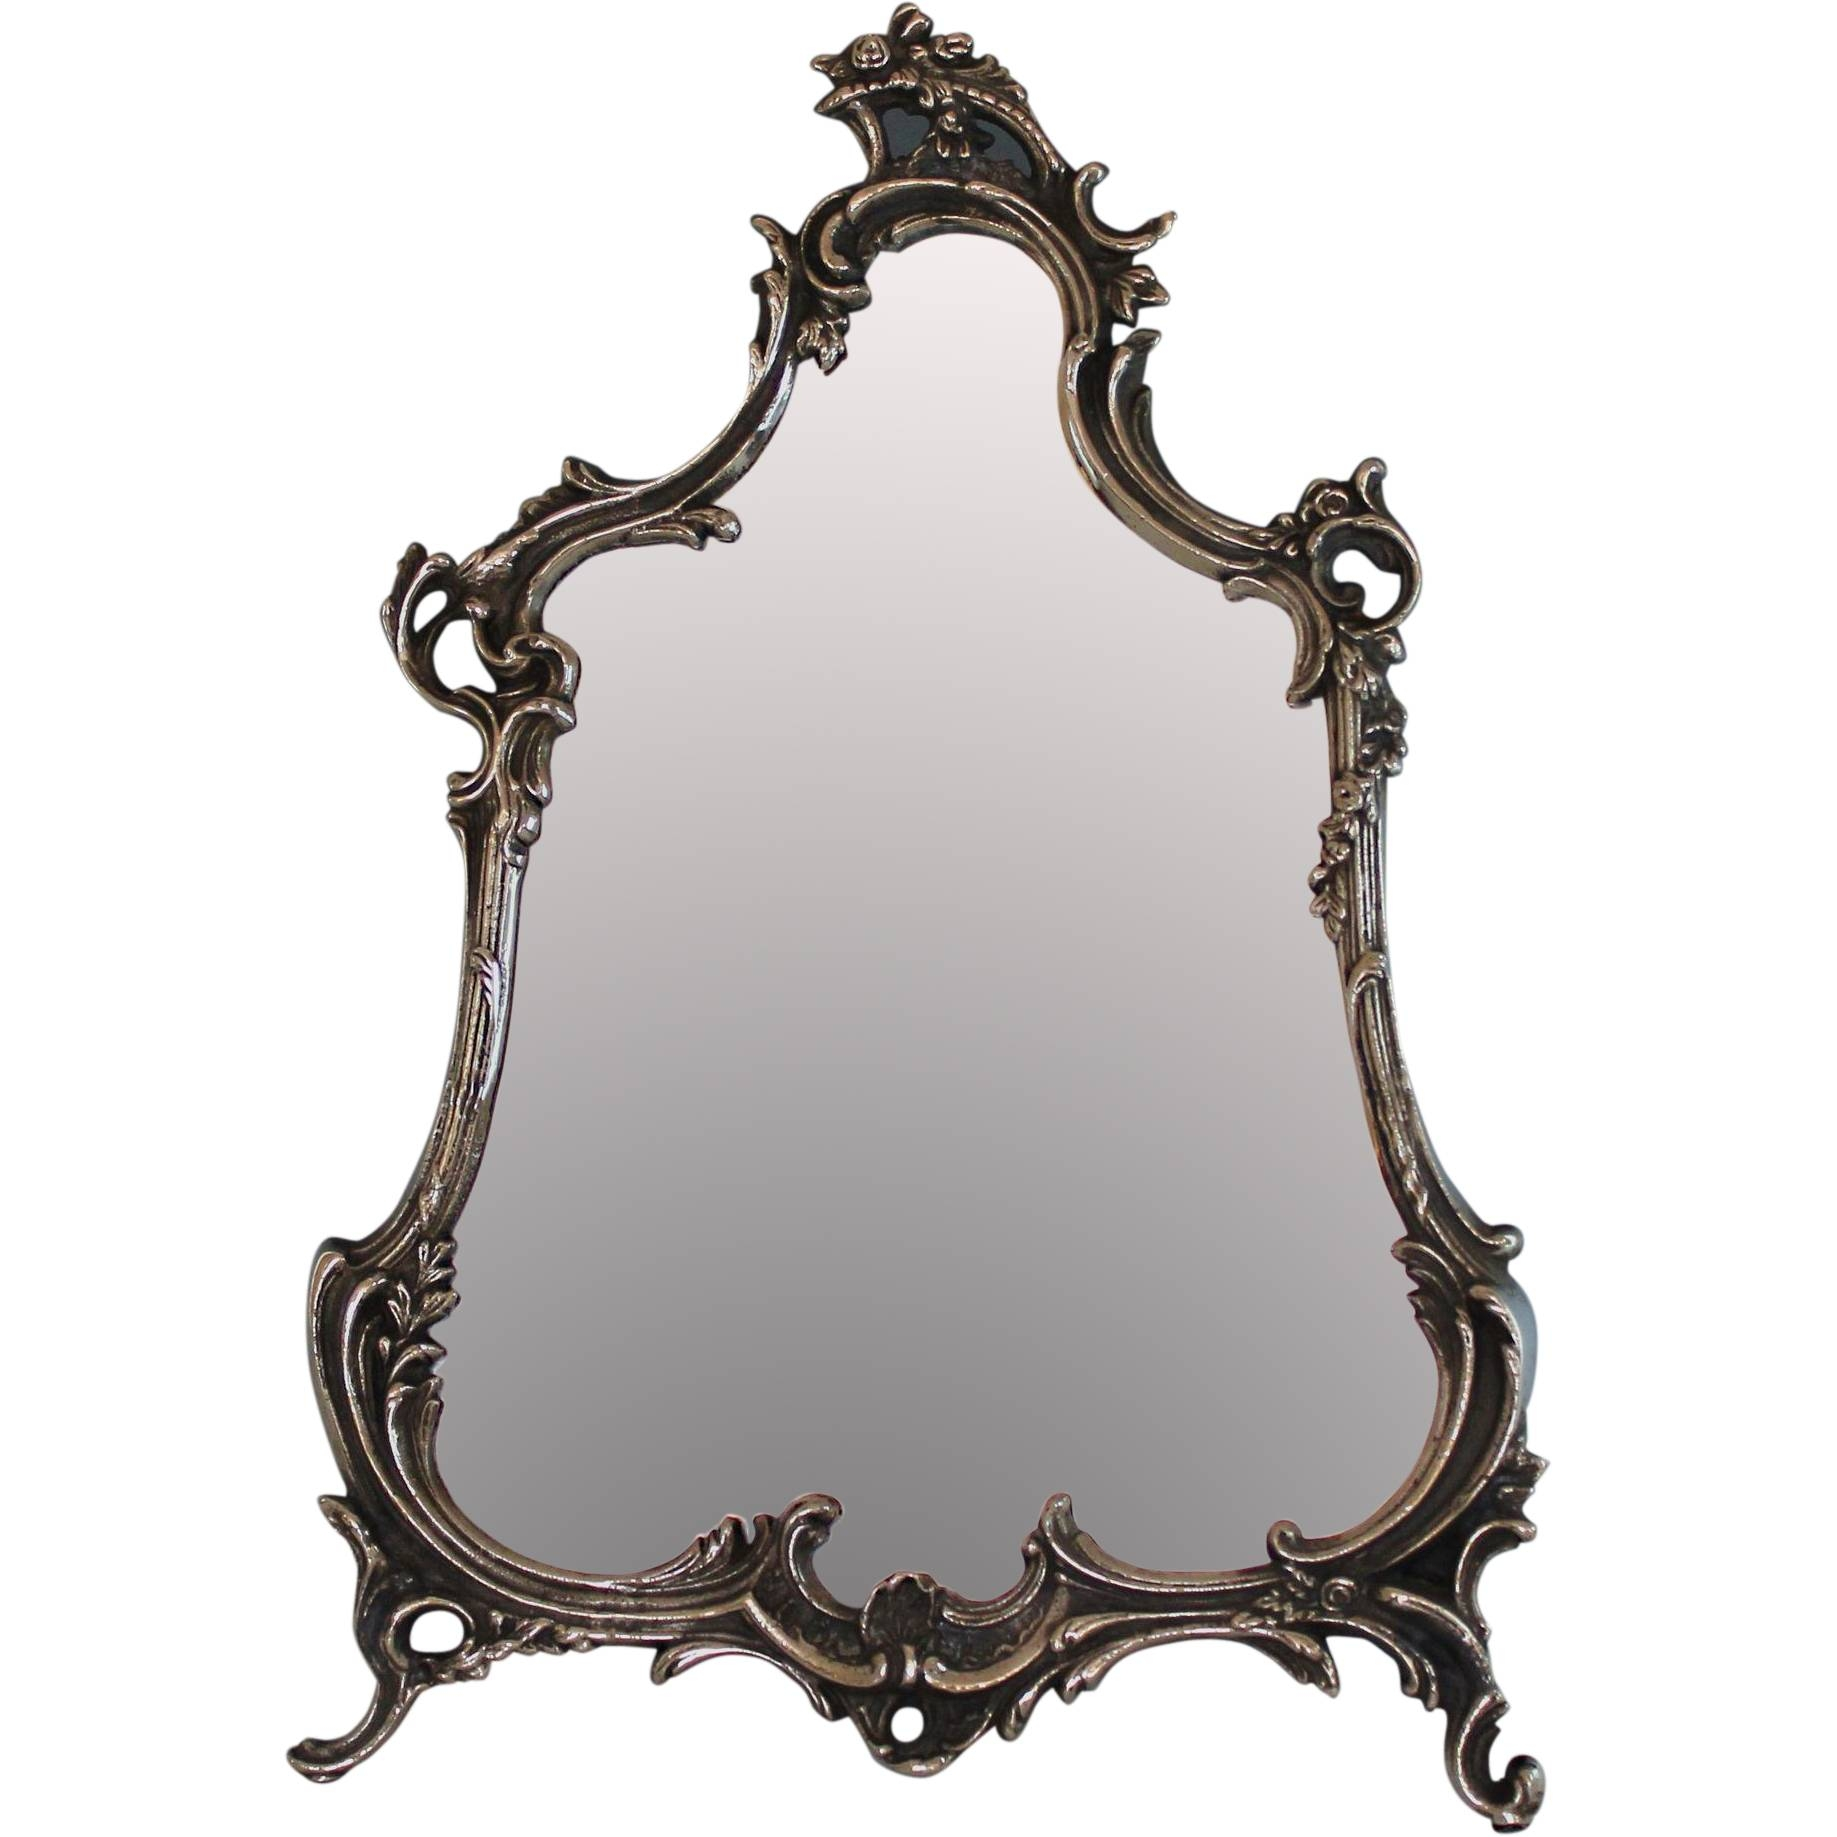 Antique Ornate Silver Plate Rococo Style Vanity Mirror From with Ornate Silver Mirrors (Image 4 of 25)